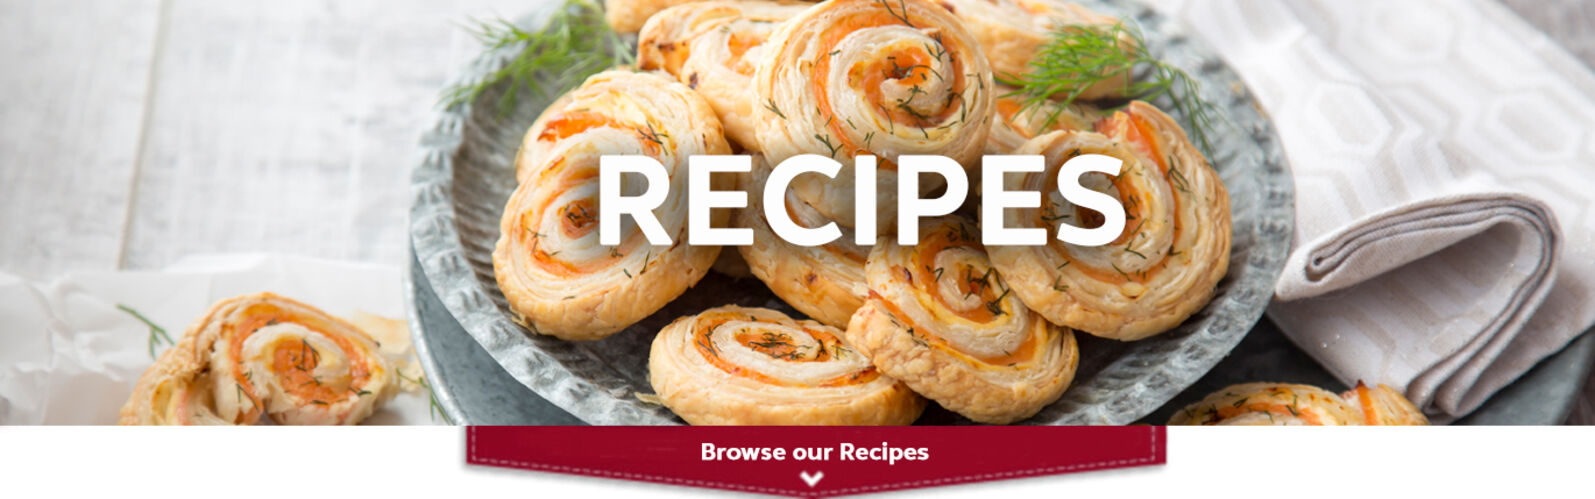 SuperValu Recipes